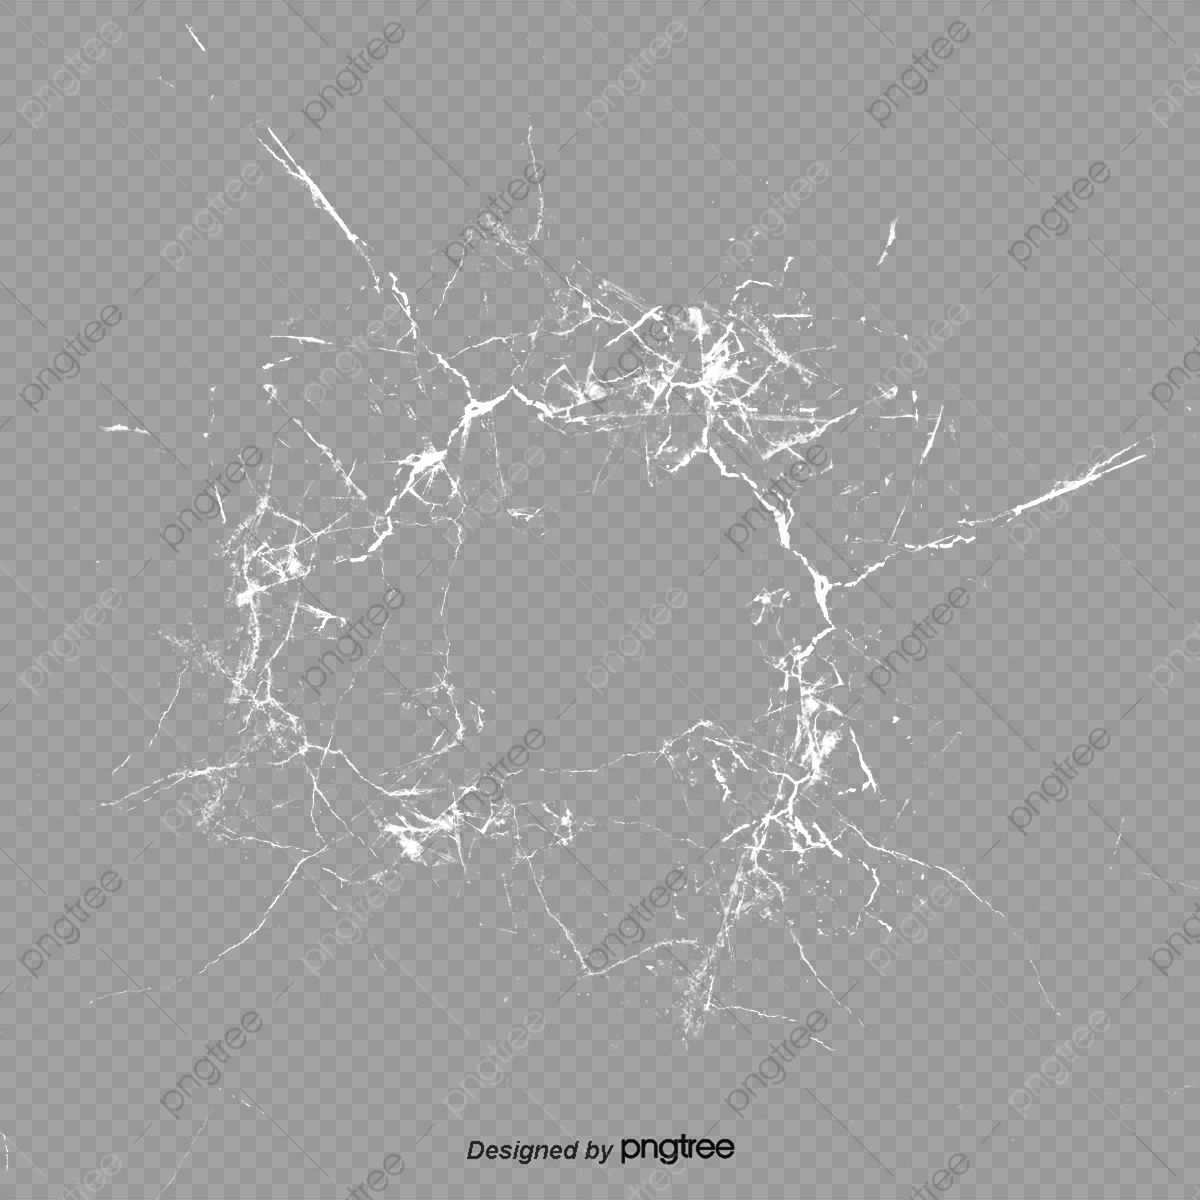 Broken Glass Glass Background Taobao Poster Background Png Transparent Clipart Image And Psd File For Free Download Clip Art Clipart Images Geometric Background